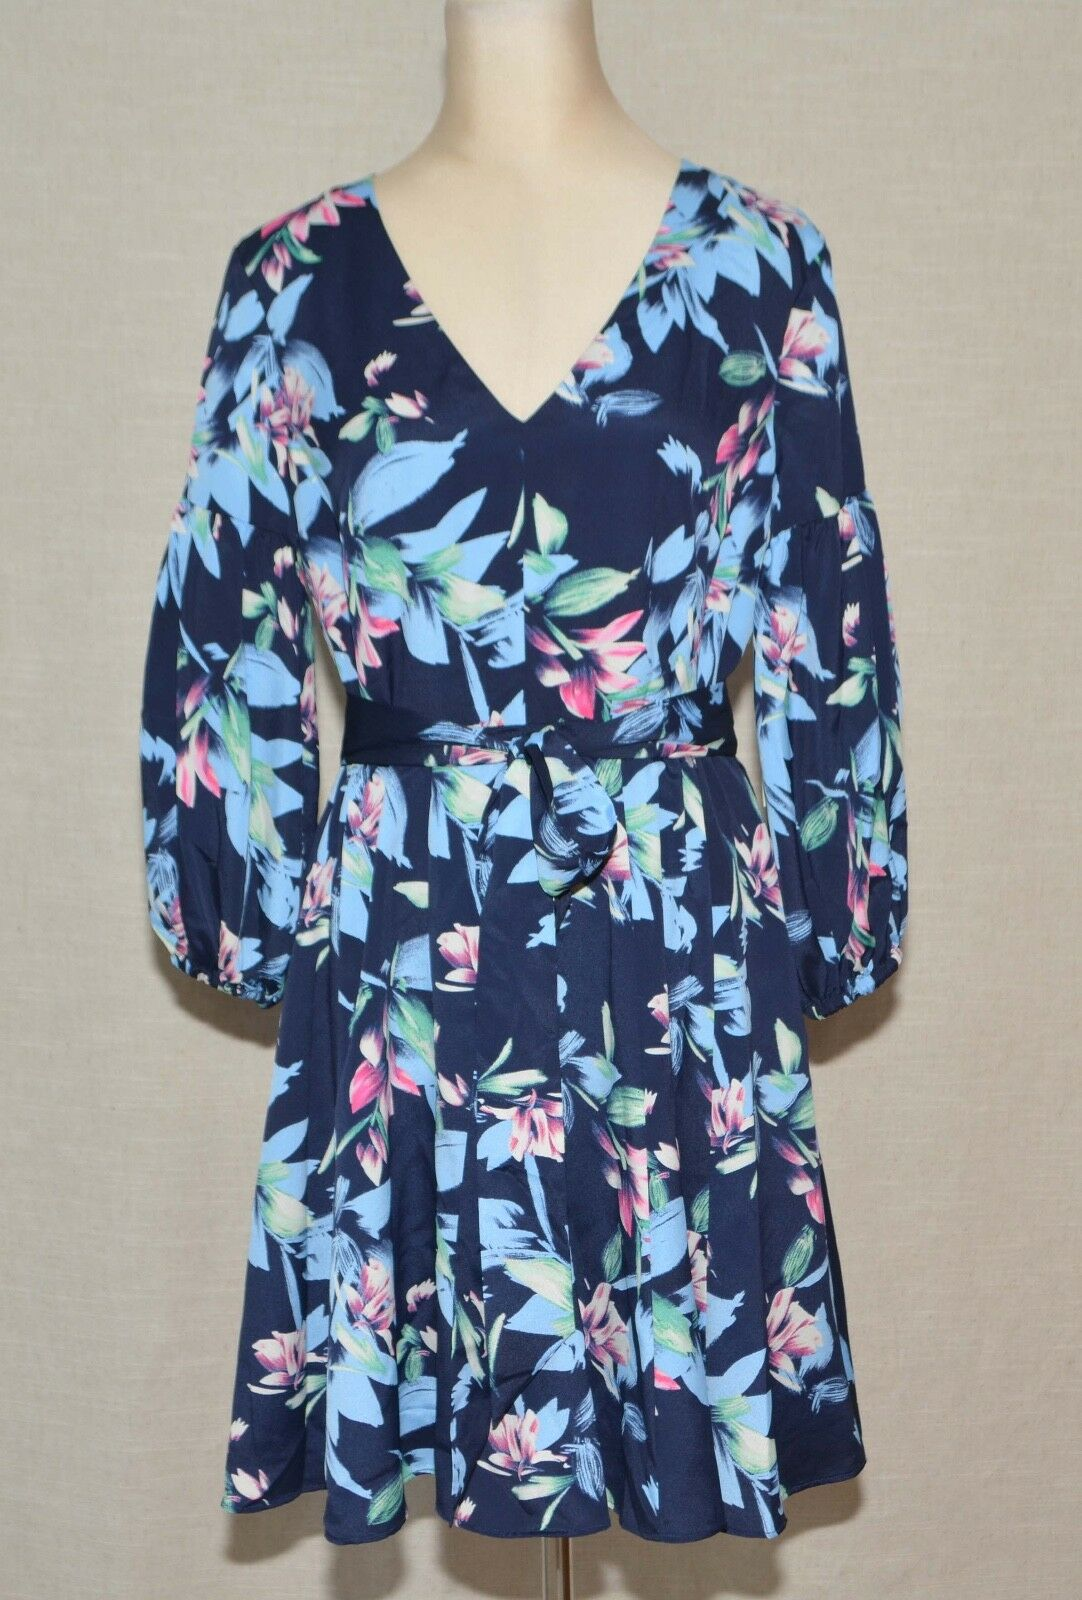 Eliza J Balloon Sleeve Fit & Flare Dress Navy Floral Petite 10 Fits M   NWT